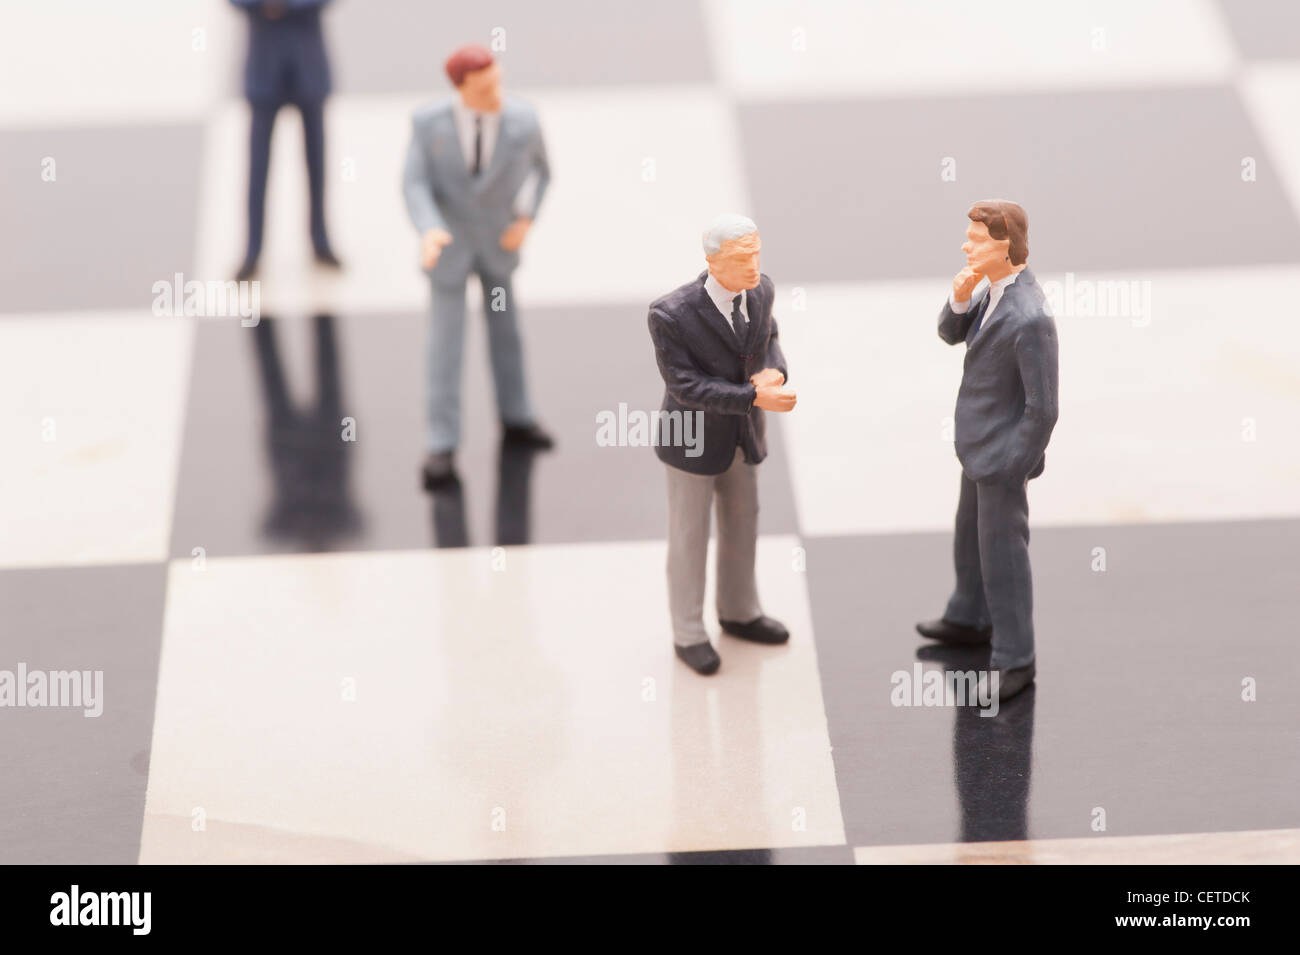 Figurines of businessmen in line to shake hands - Stock Image